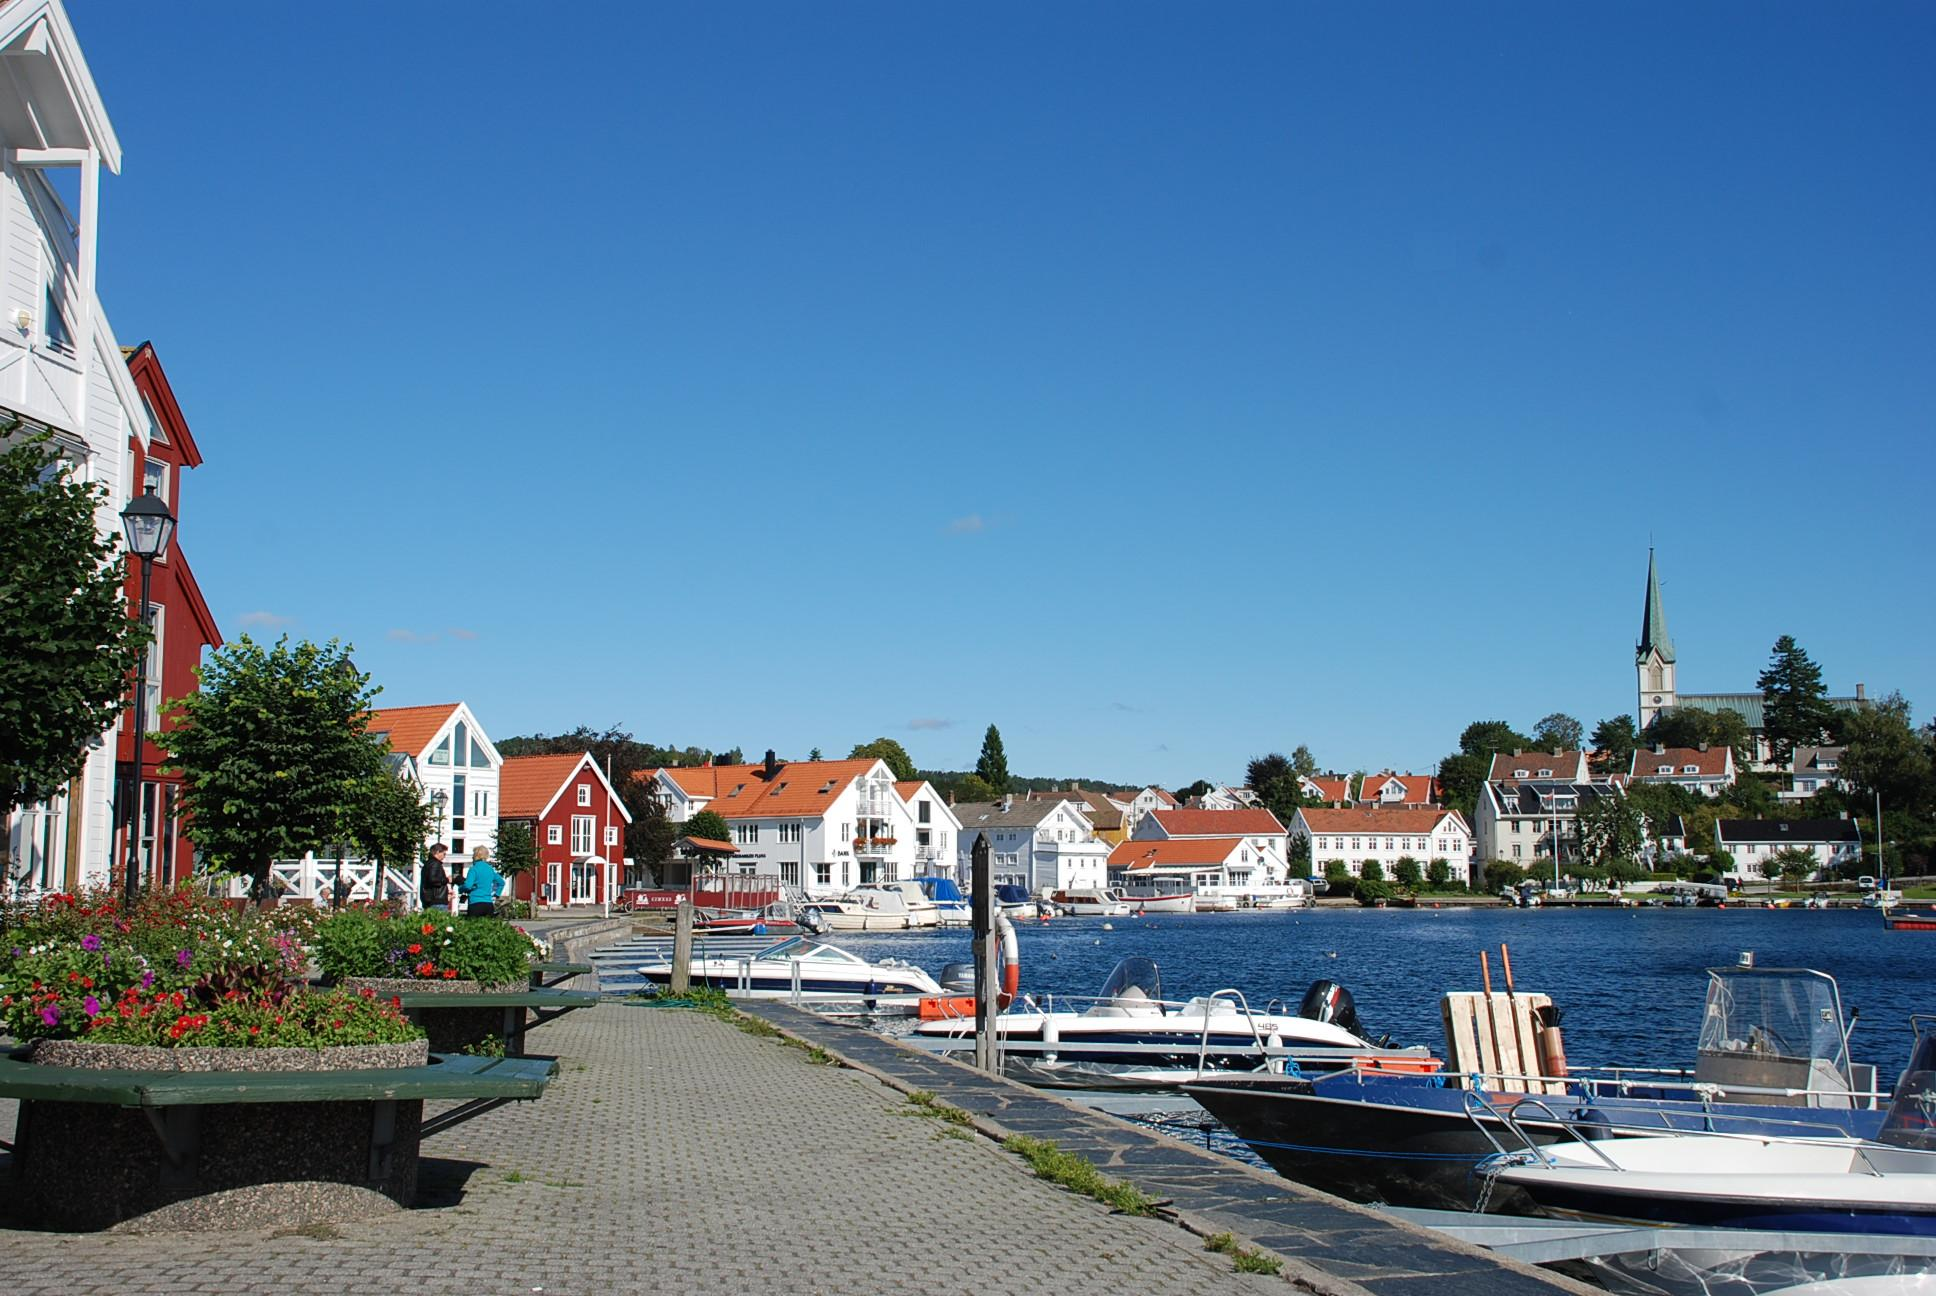 Lillesand front | A Traveler's Photo Journal